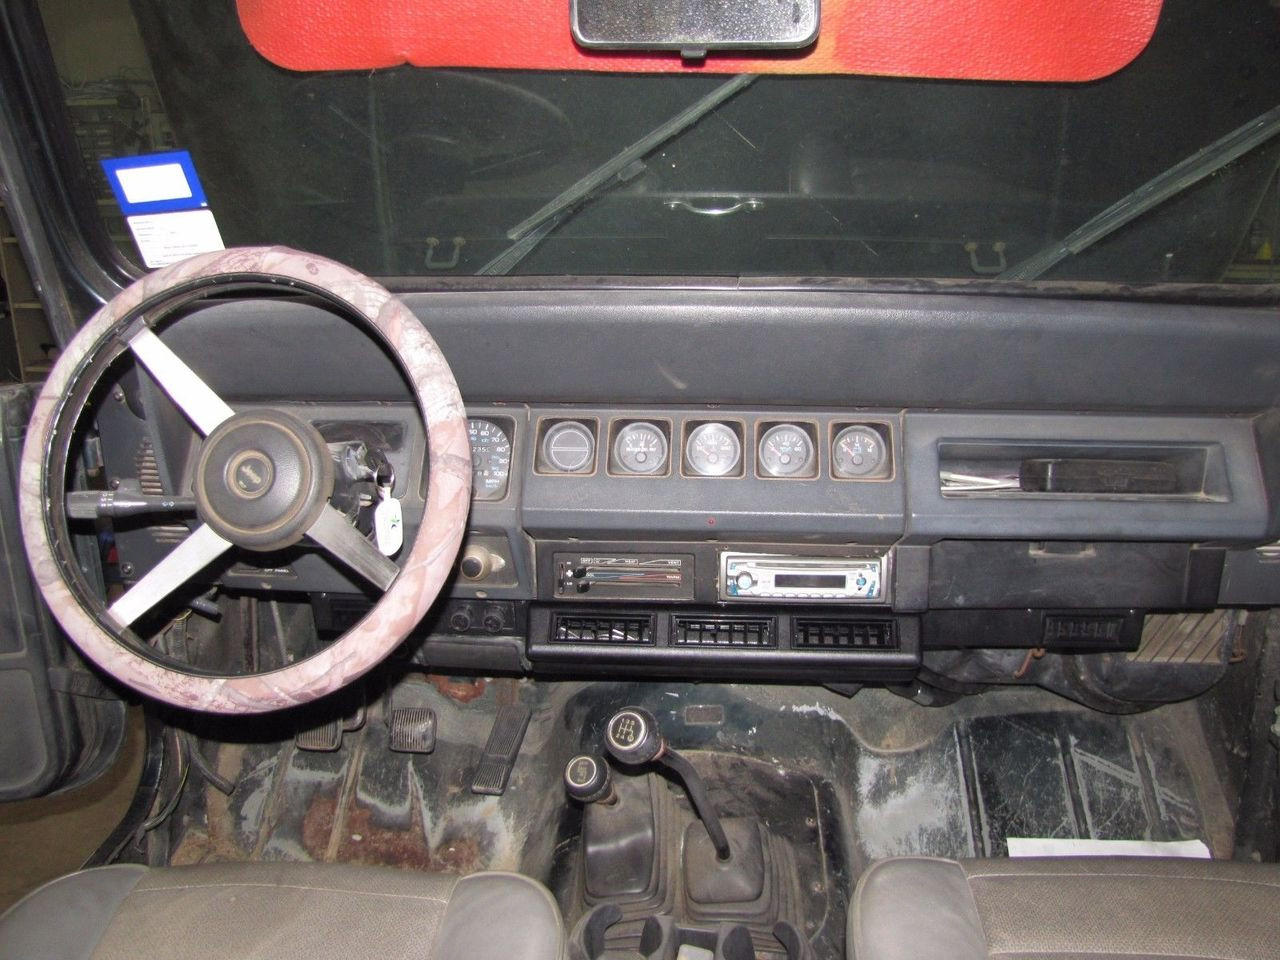 1987 1988 1989 1990 1991 1992 1993 1994 1995 Jeep YJ Wrangler Air Conditioning Complete System